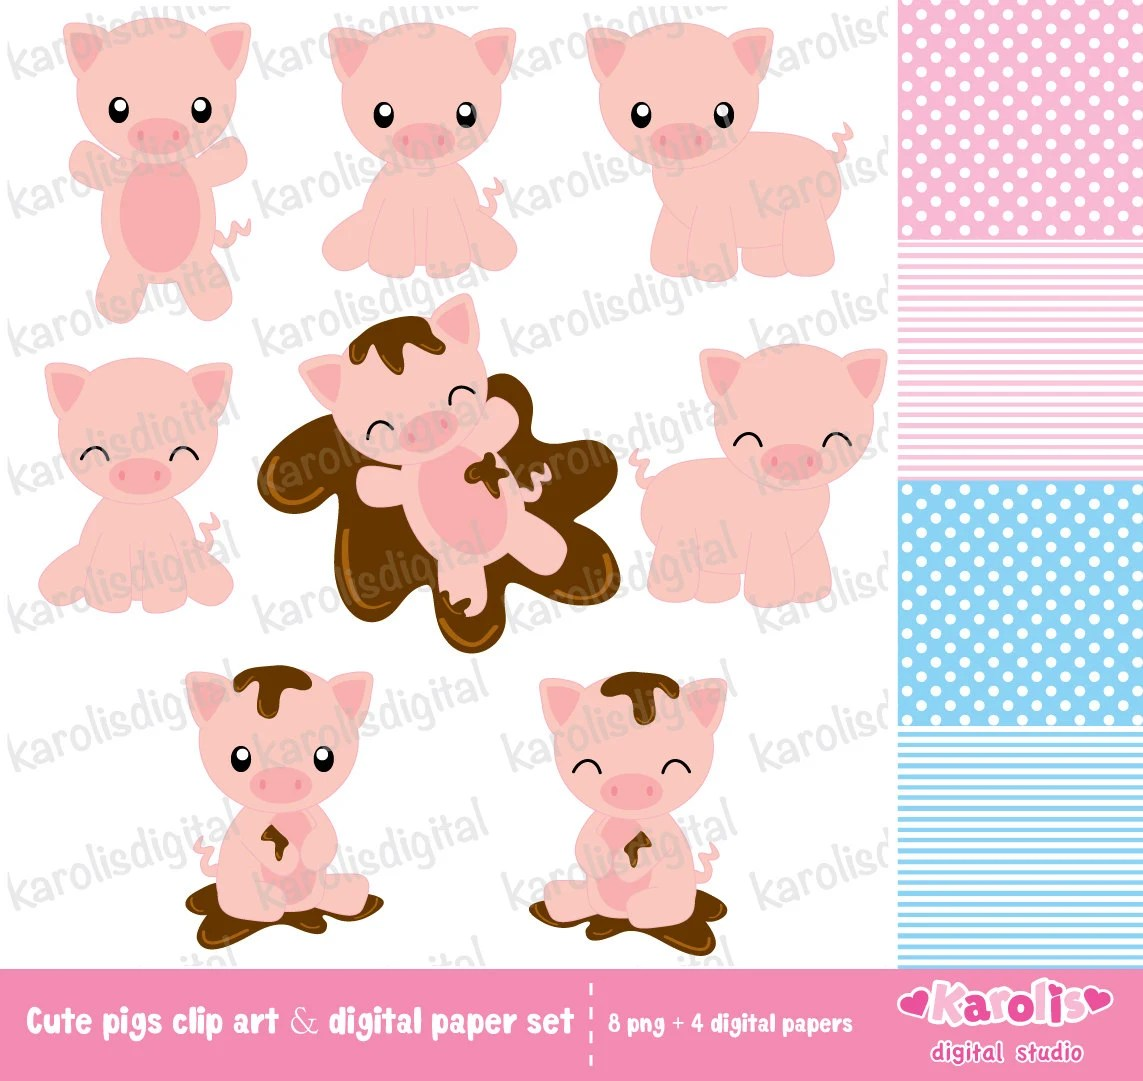 hight resolution of cute pigs clip art digital paper set